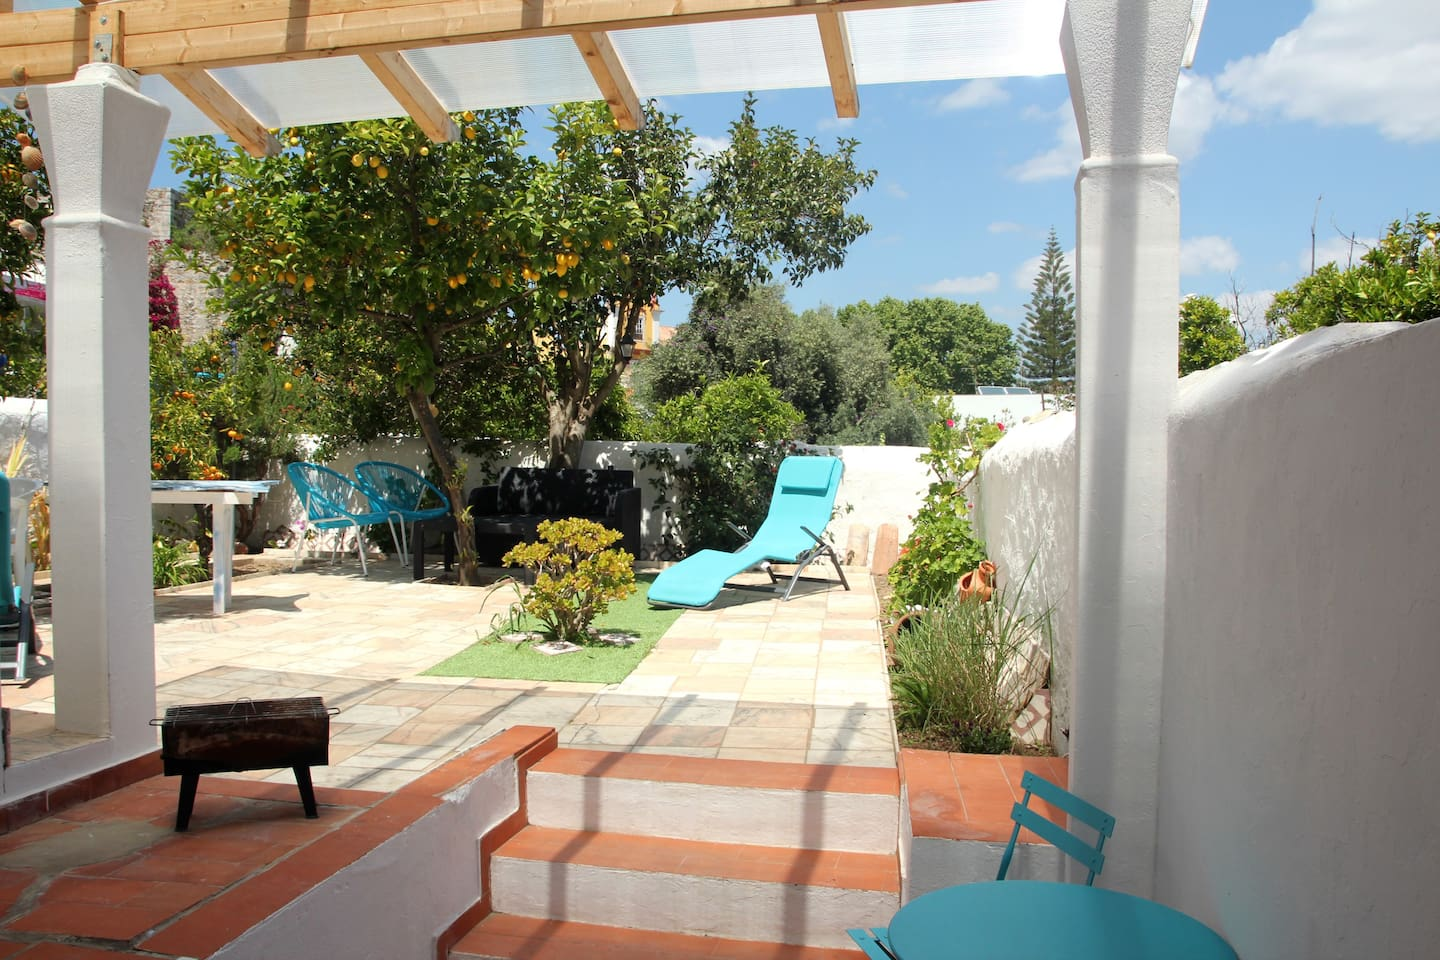 The garden with sunny and shade spaces...relax!